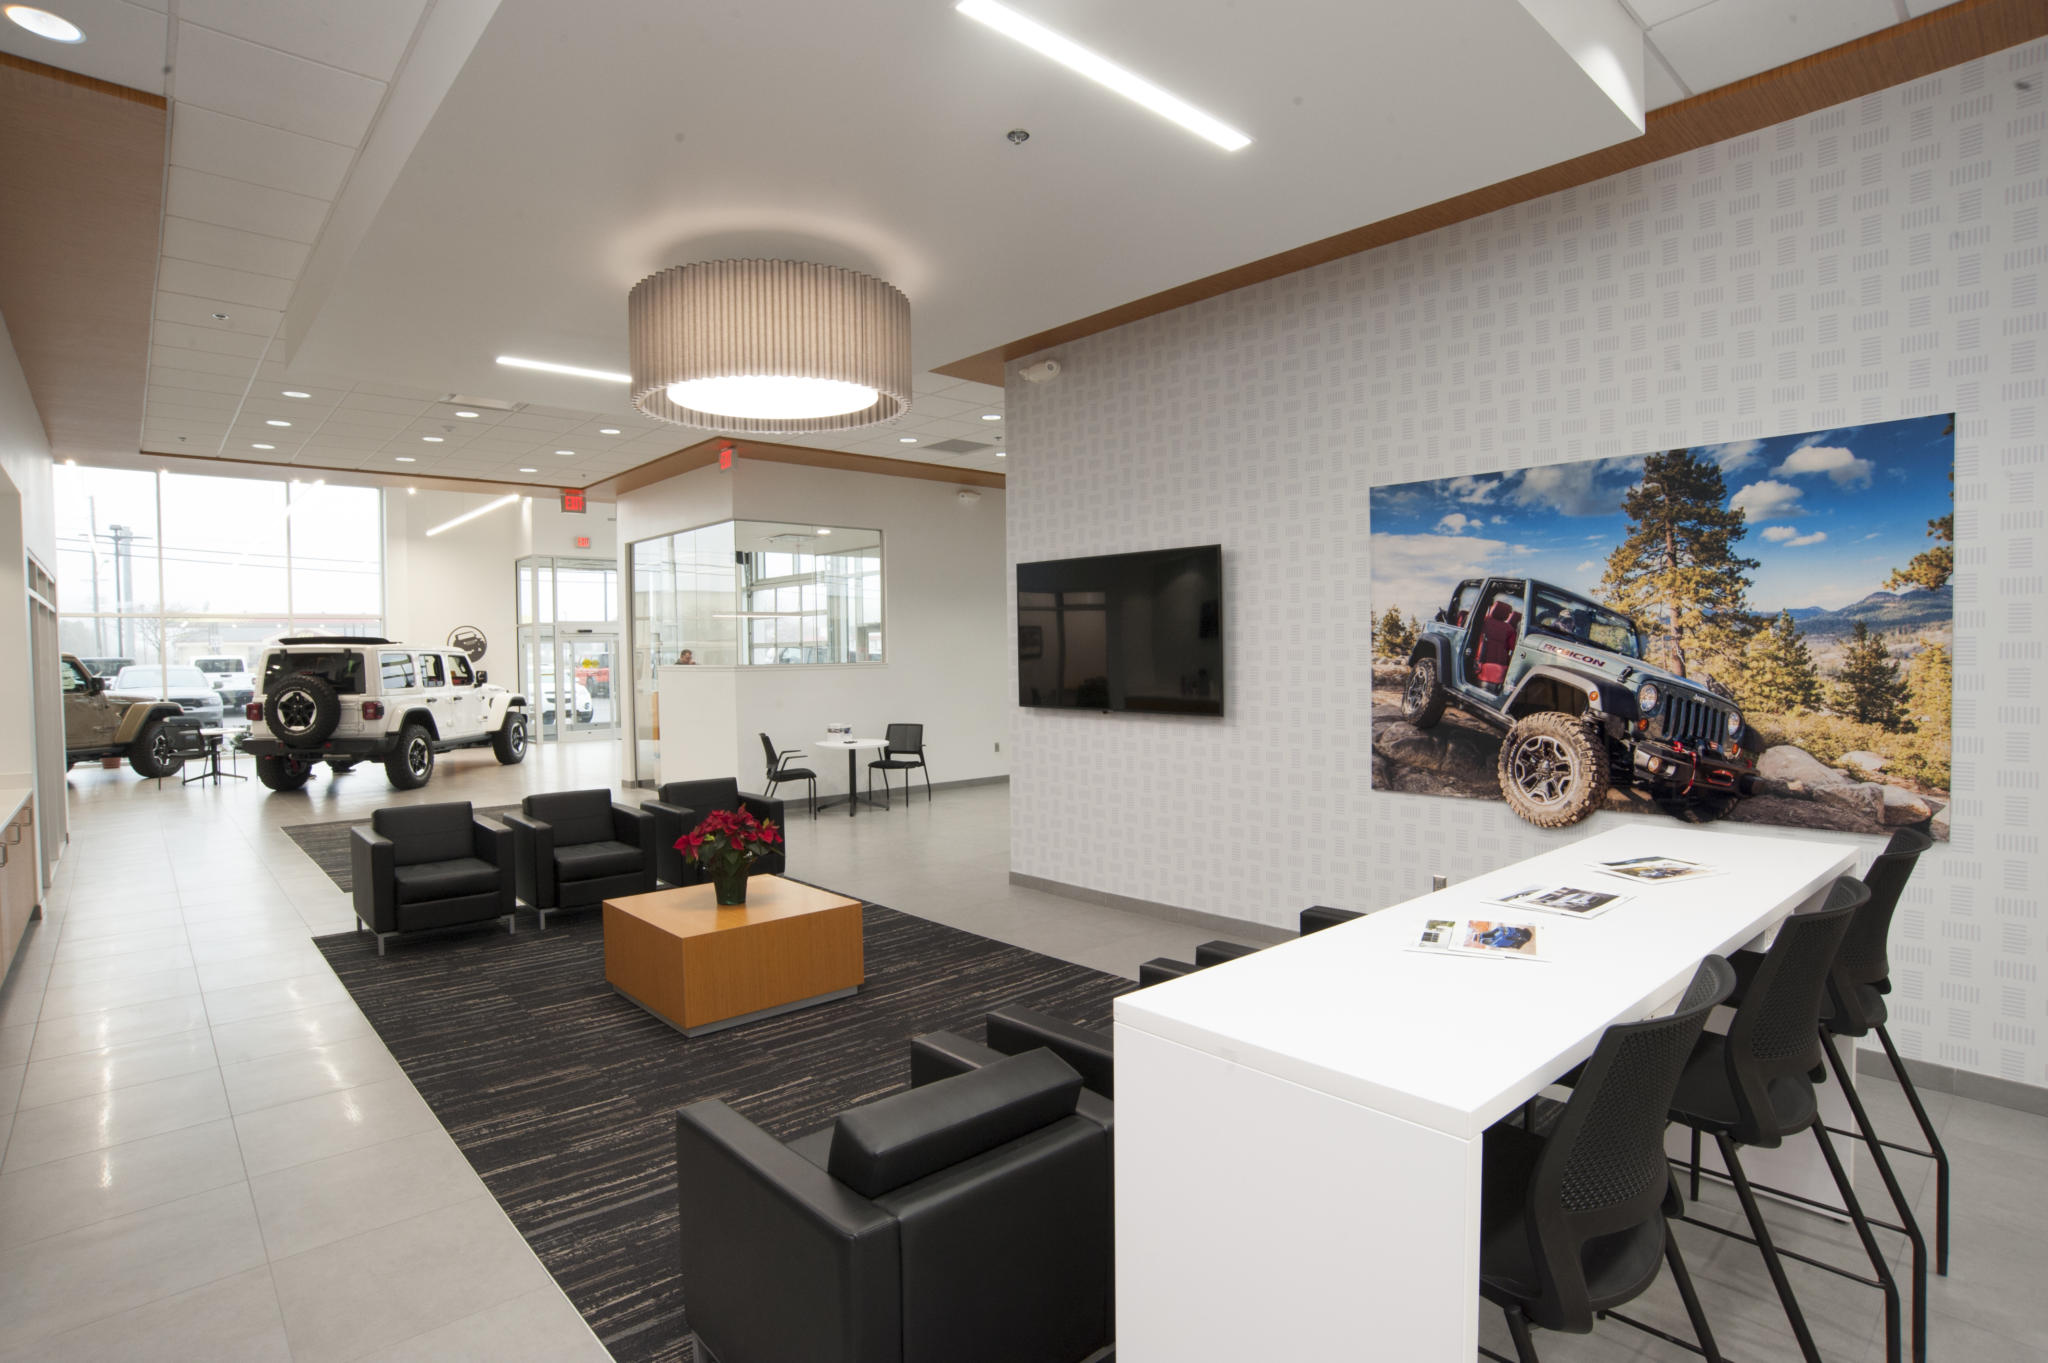 image of waiting room at car dealership, tv on wall, chairs to sit on